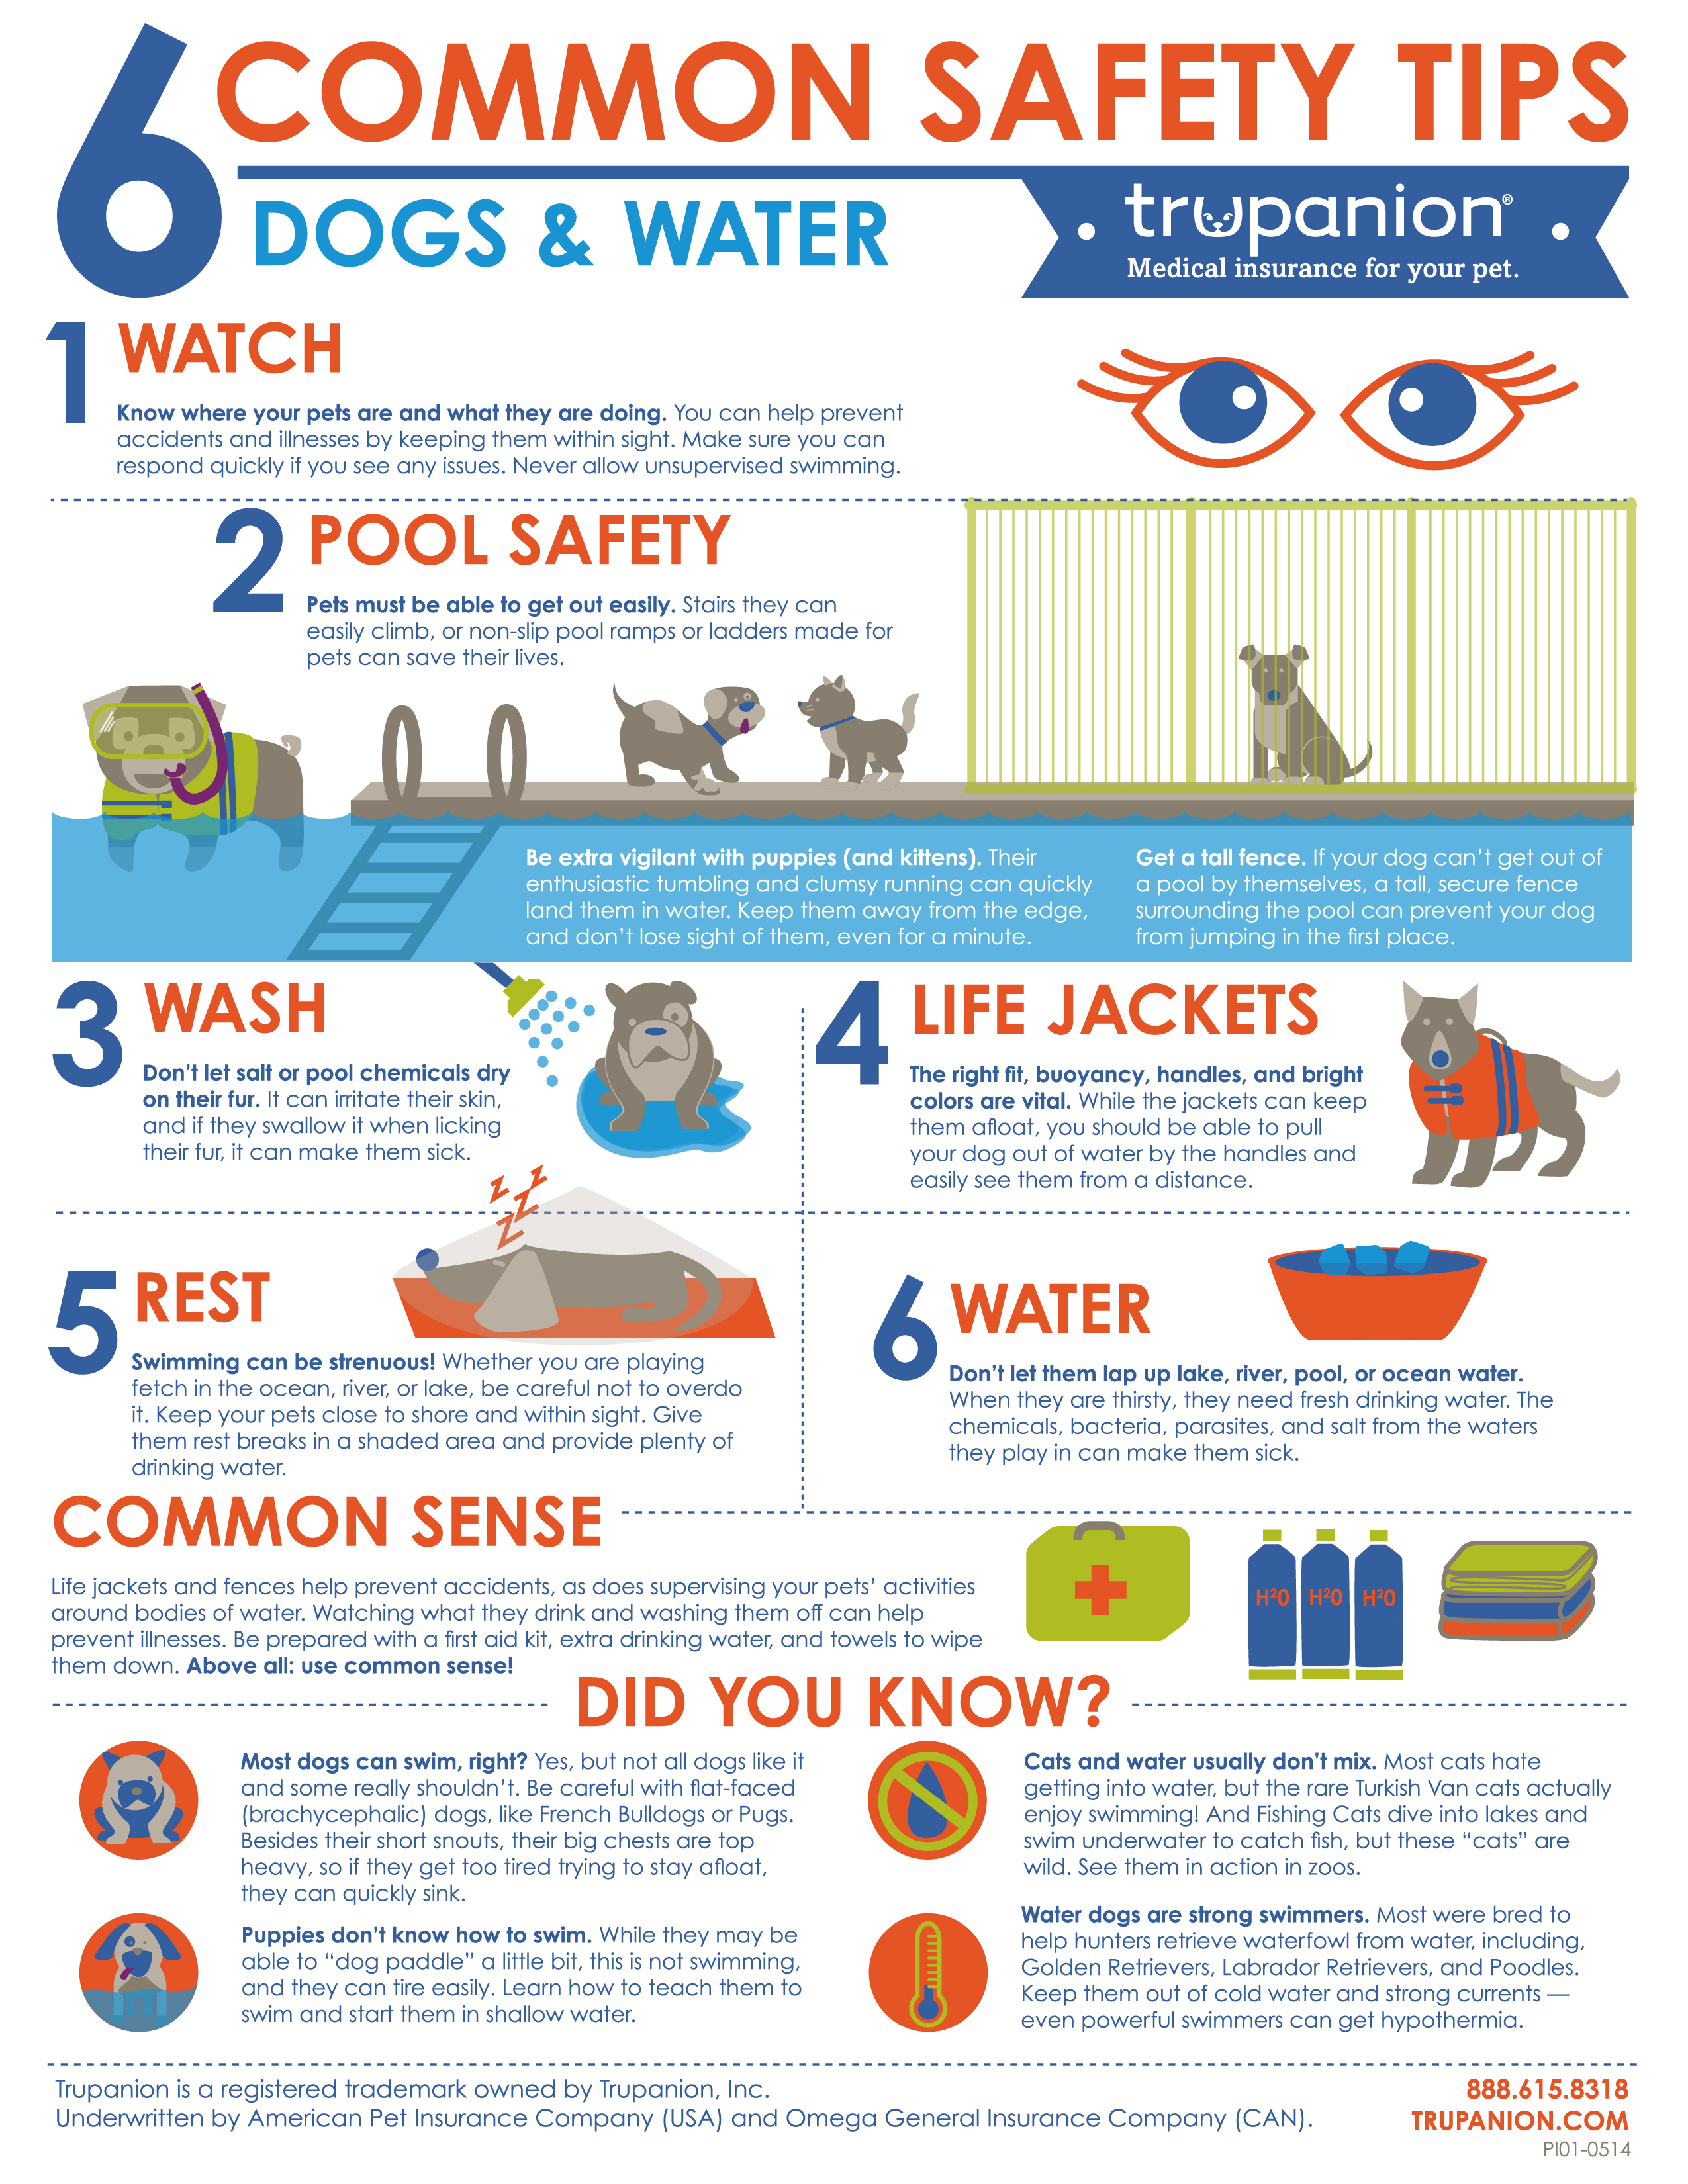 summer infant beach chair bedroom ireland water safety tips from trupanion | dog living